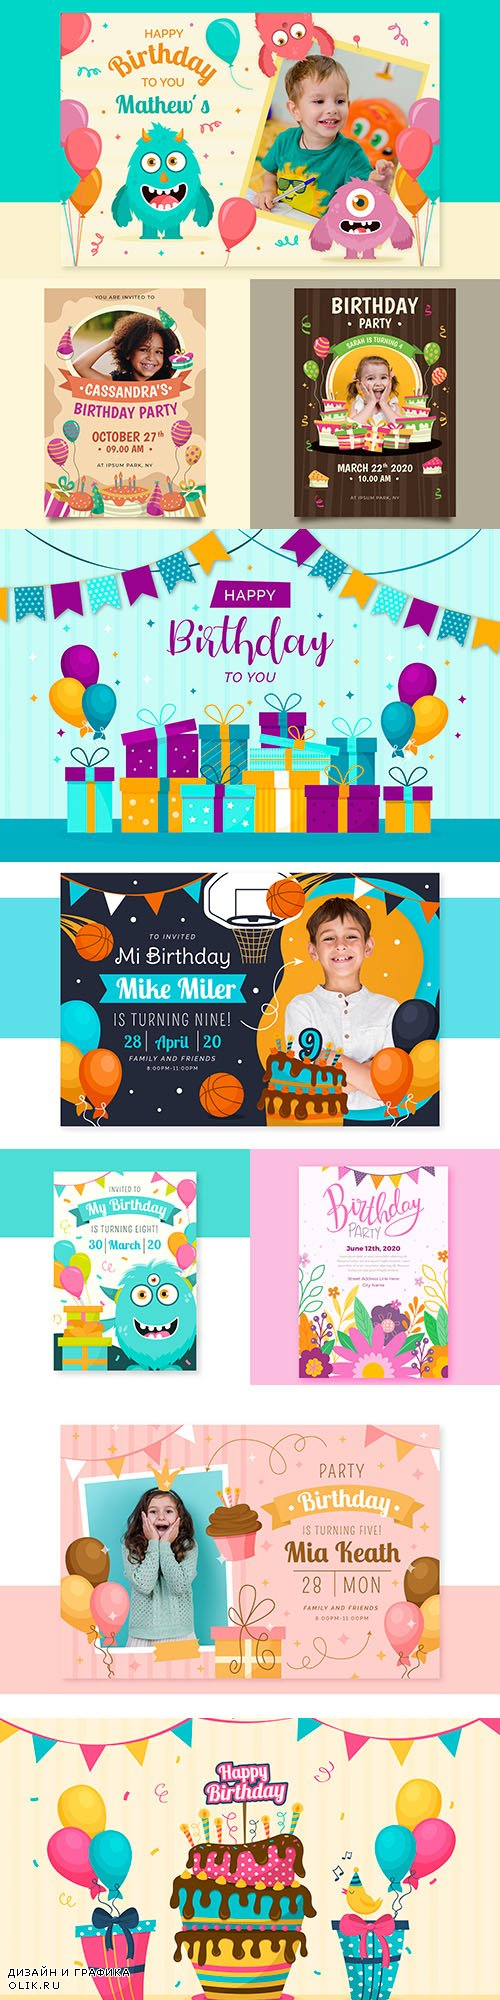 Children 's birthday invitation template with photos